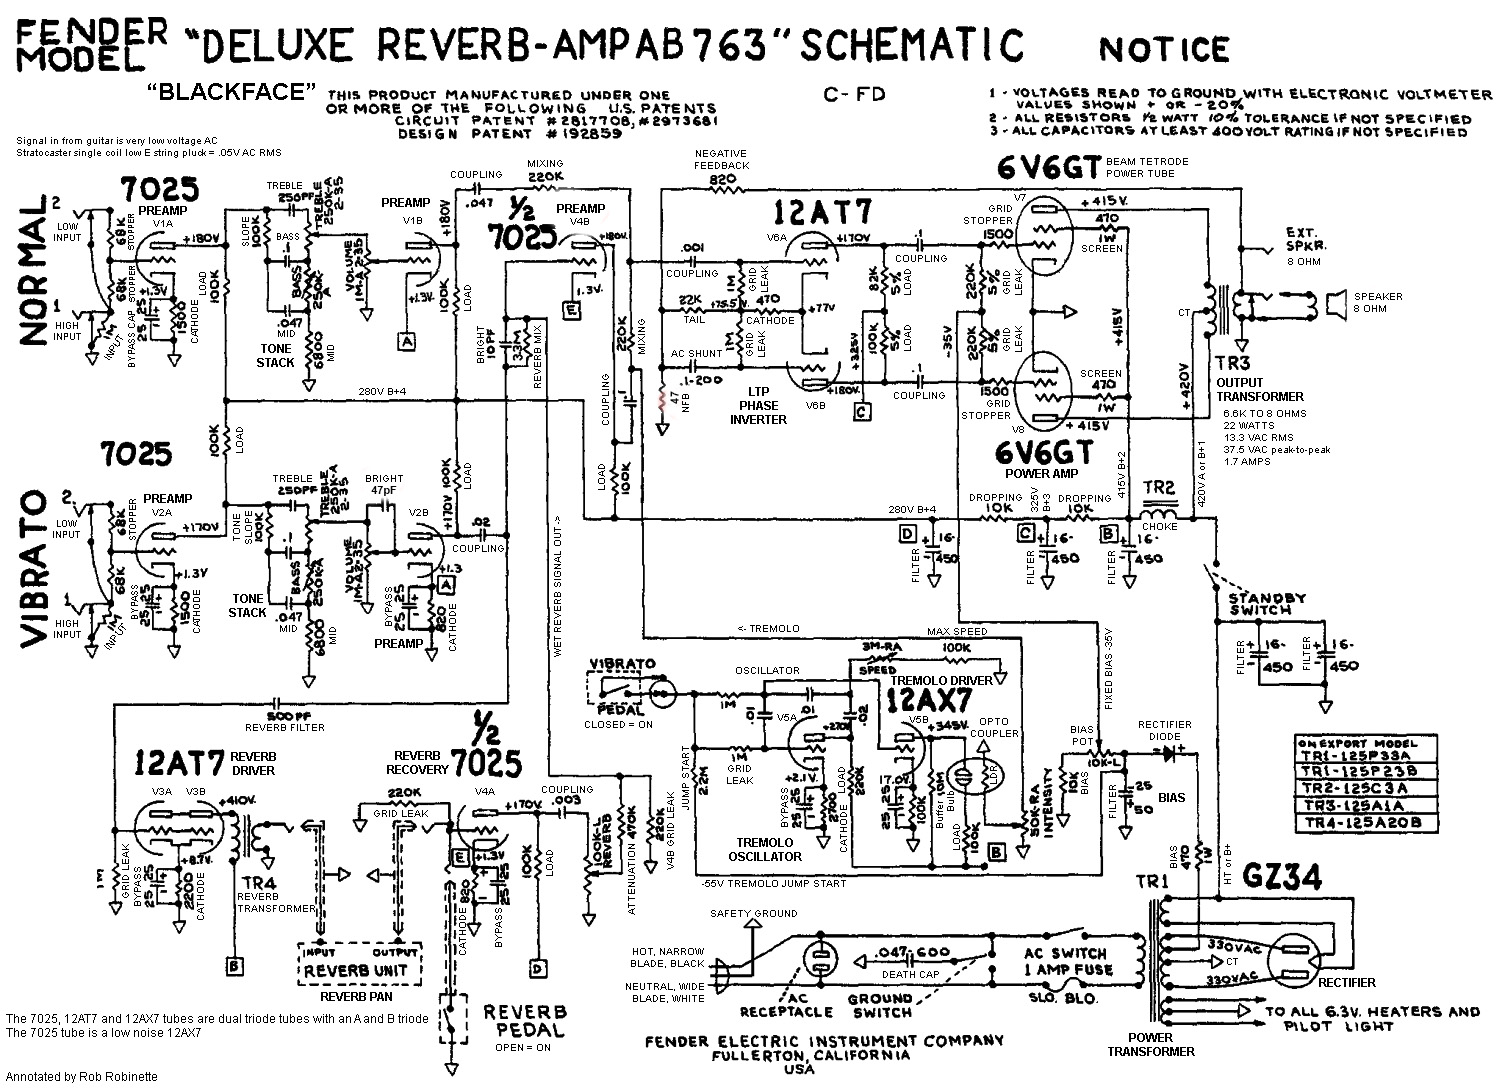 hight resolution of the ab763 deluxe reverb schematic with annotations